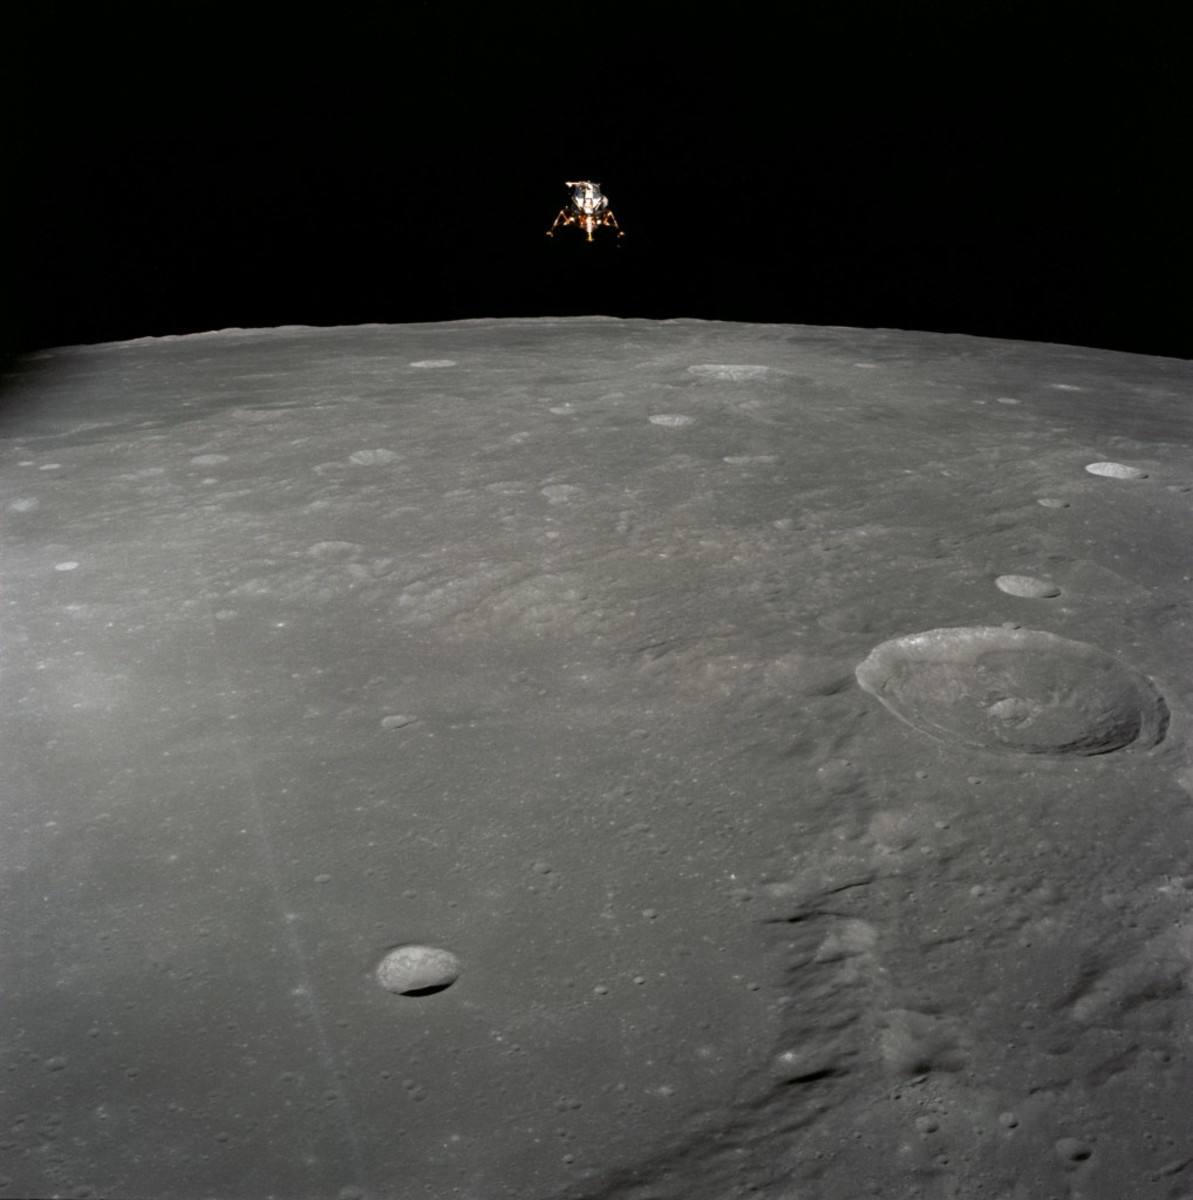 Unsolved Mysteries of Moon Observations and Transient Lunar Phenomena